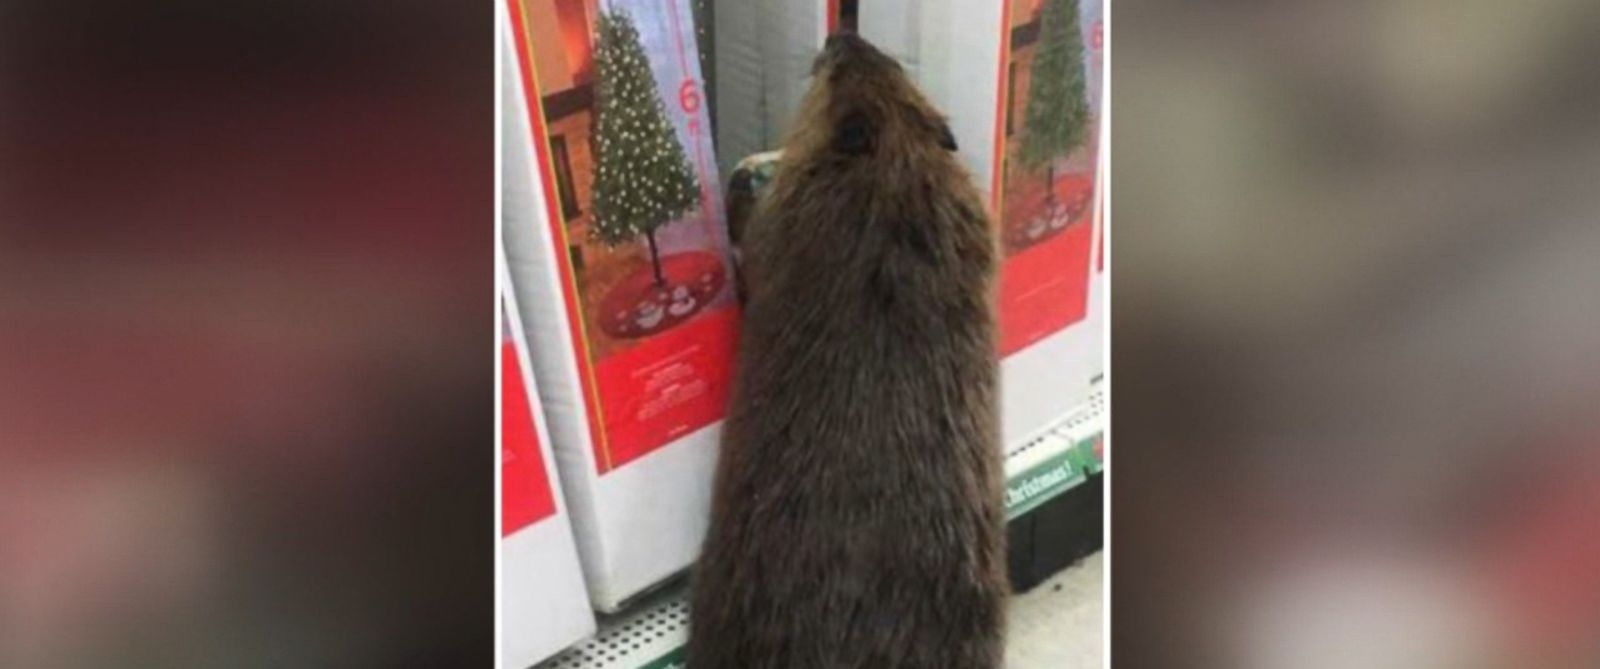 PHOTO: A beaver was photographed by authorities in the Christmas tree section of a store in St. Marys County, Maryland, on Nov. 30, 2016.